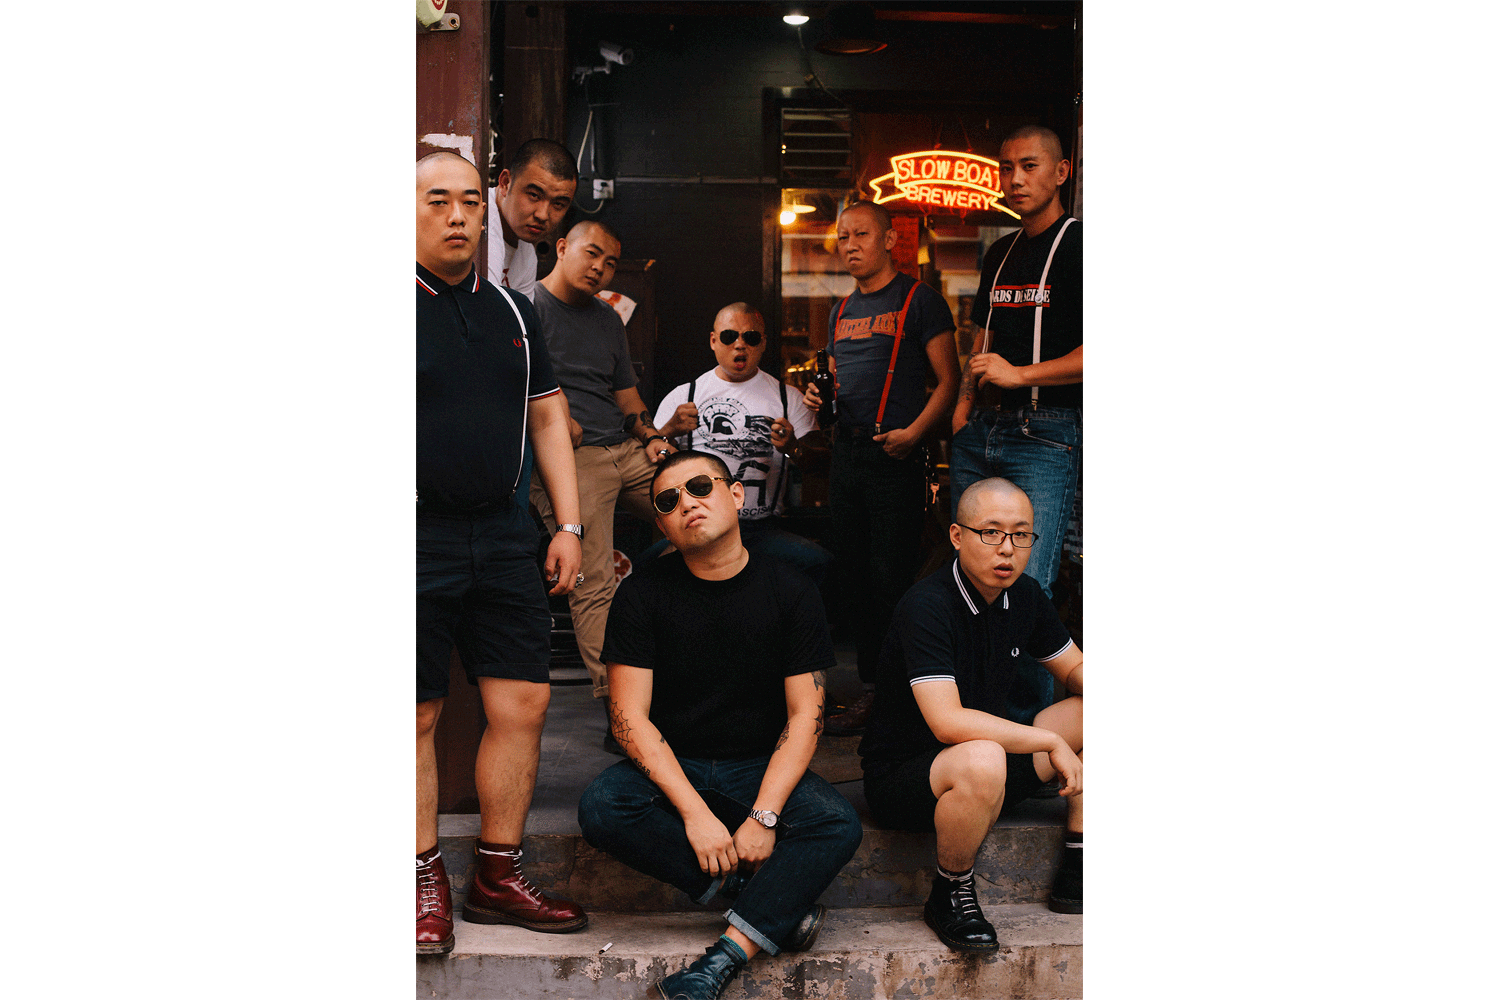 Whenever there is a punk concert, or an anniversary related to Misandao or the late Lei Jun, these friends assemble at the bar. Bangbang says, 'I don't have any normal expressions. I can't smile anymore. I'm just always pissed off.'